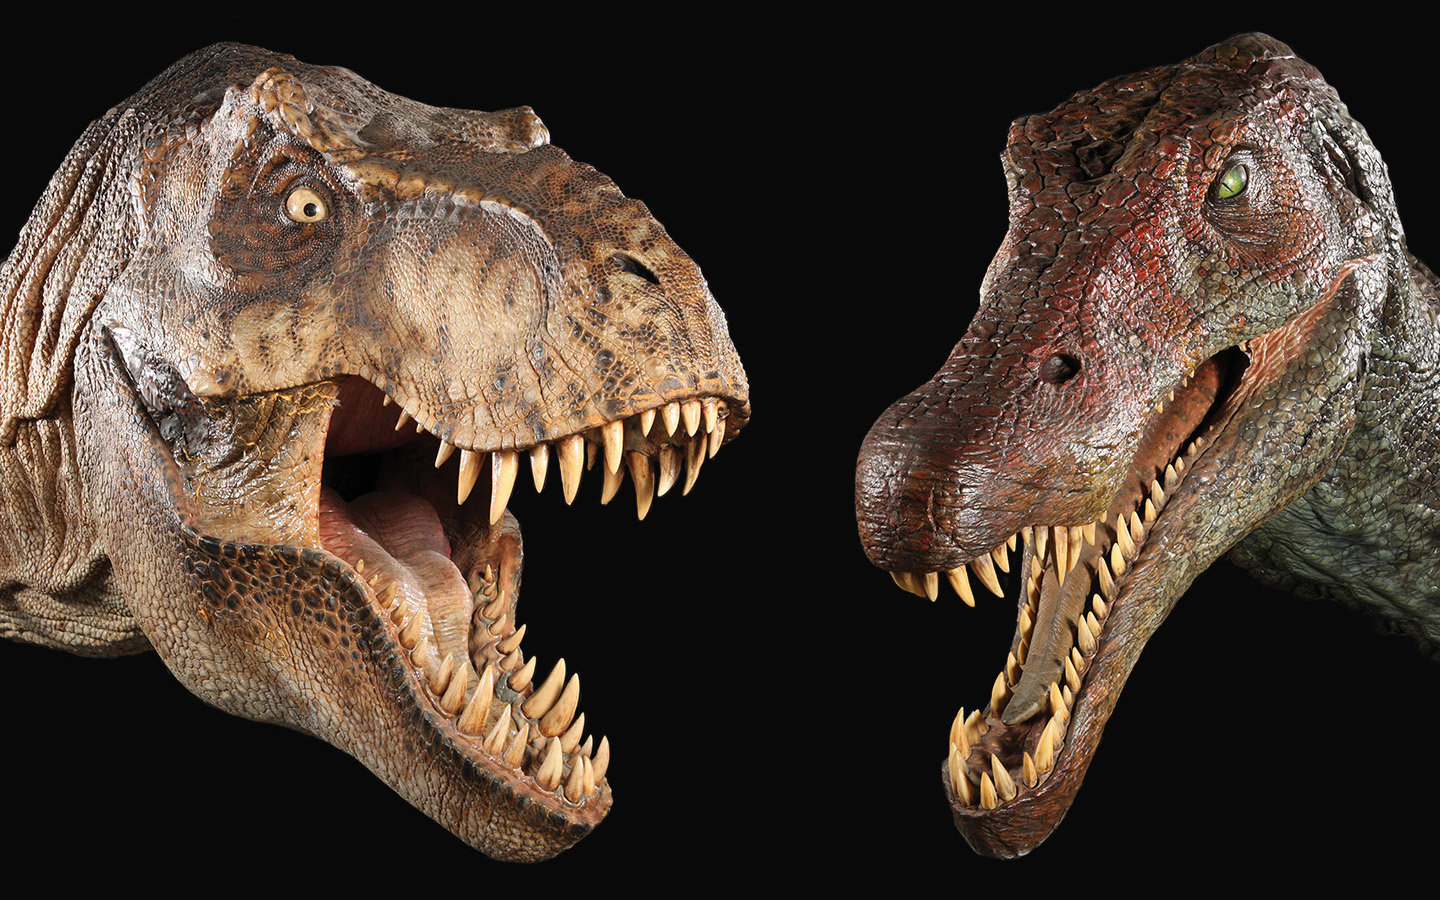 High resolution Dinosaur hd 1440x900 background ID:73878 for PC